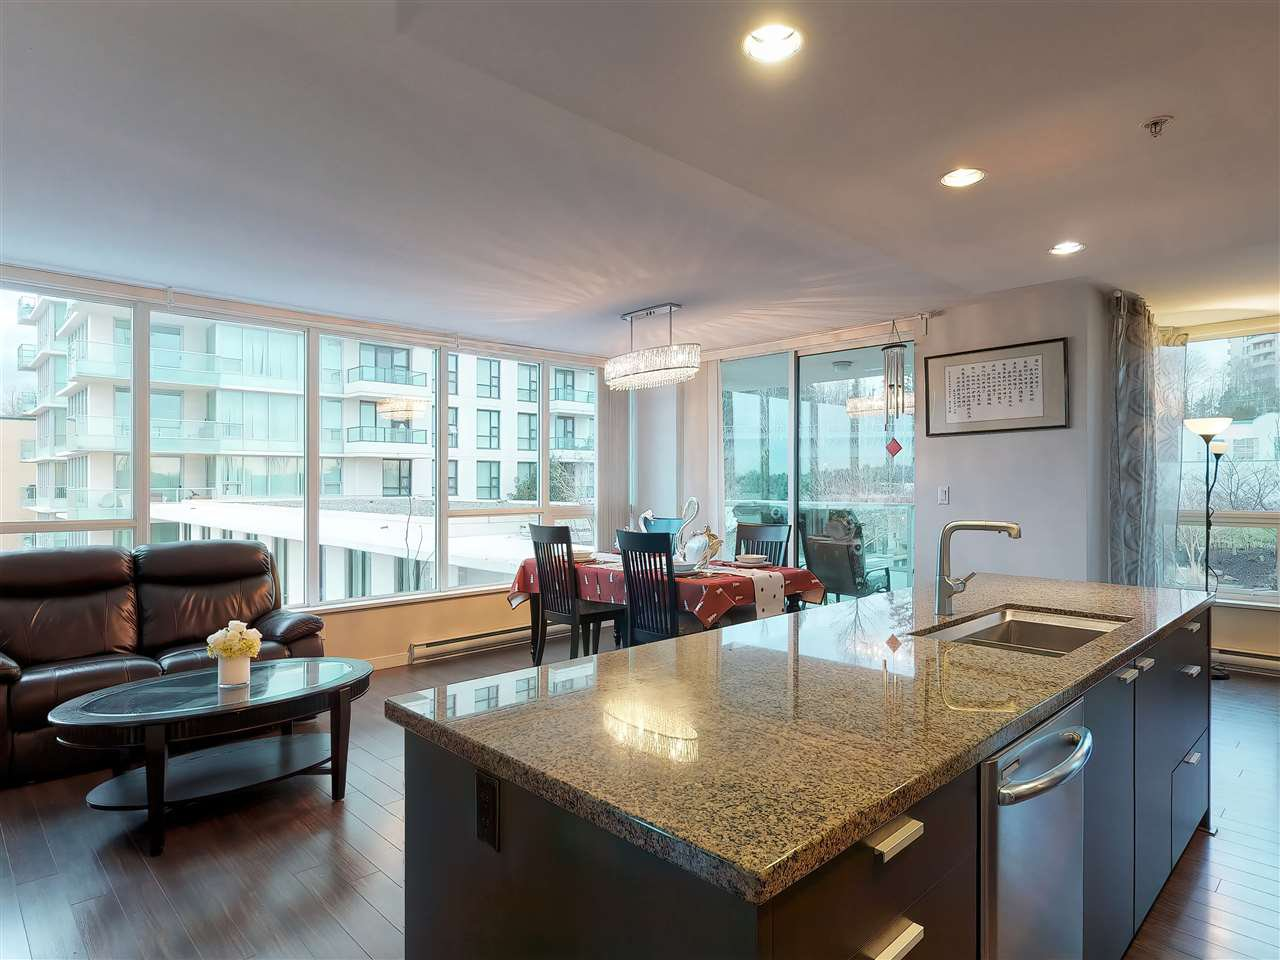 Photo 4: Photos: 405 2232 DOUGLAS ROAD in Burnaby: Brentwood Park Condo for sale (Burnaby North)  : MLS®# R2347040